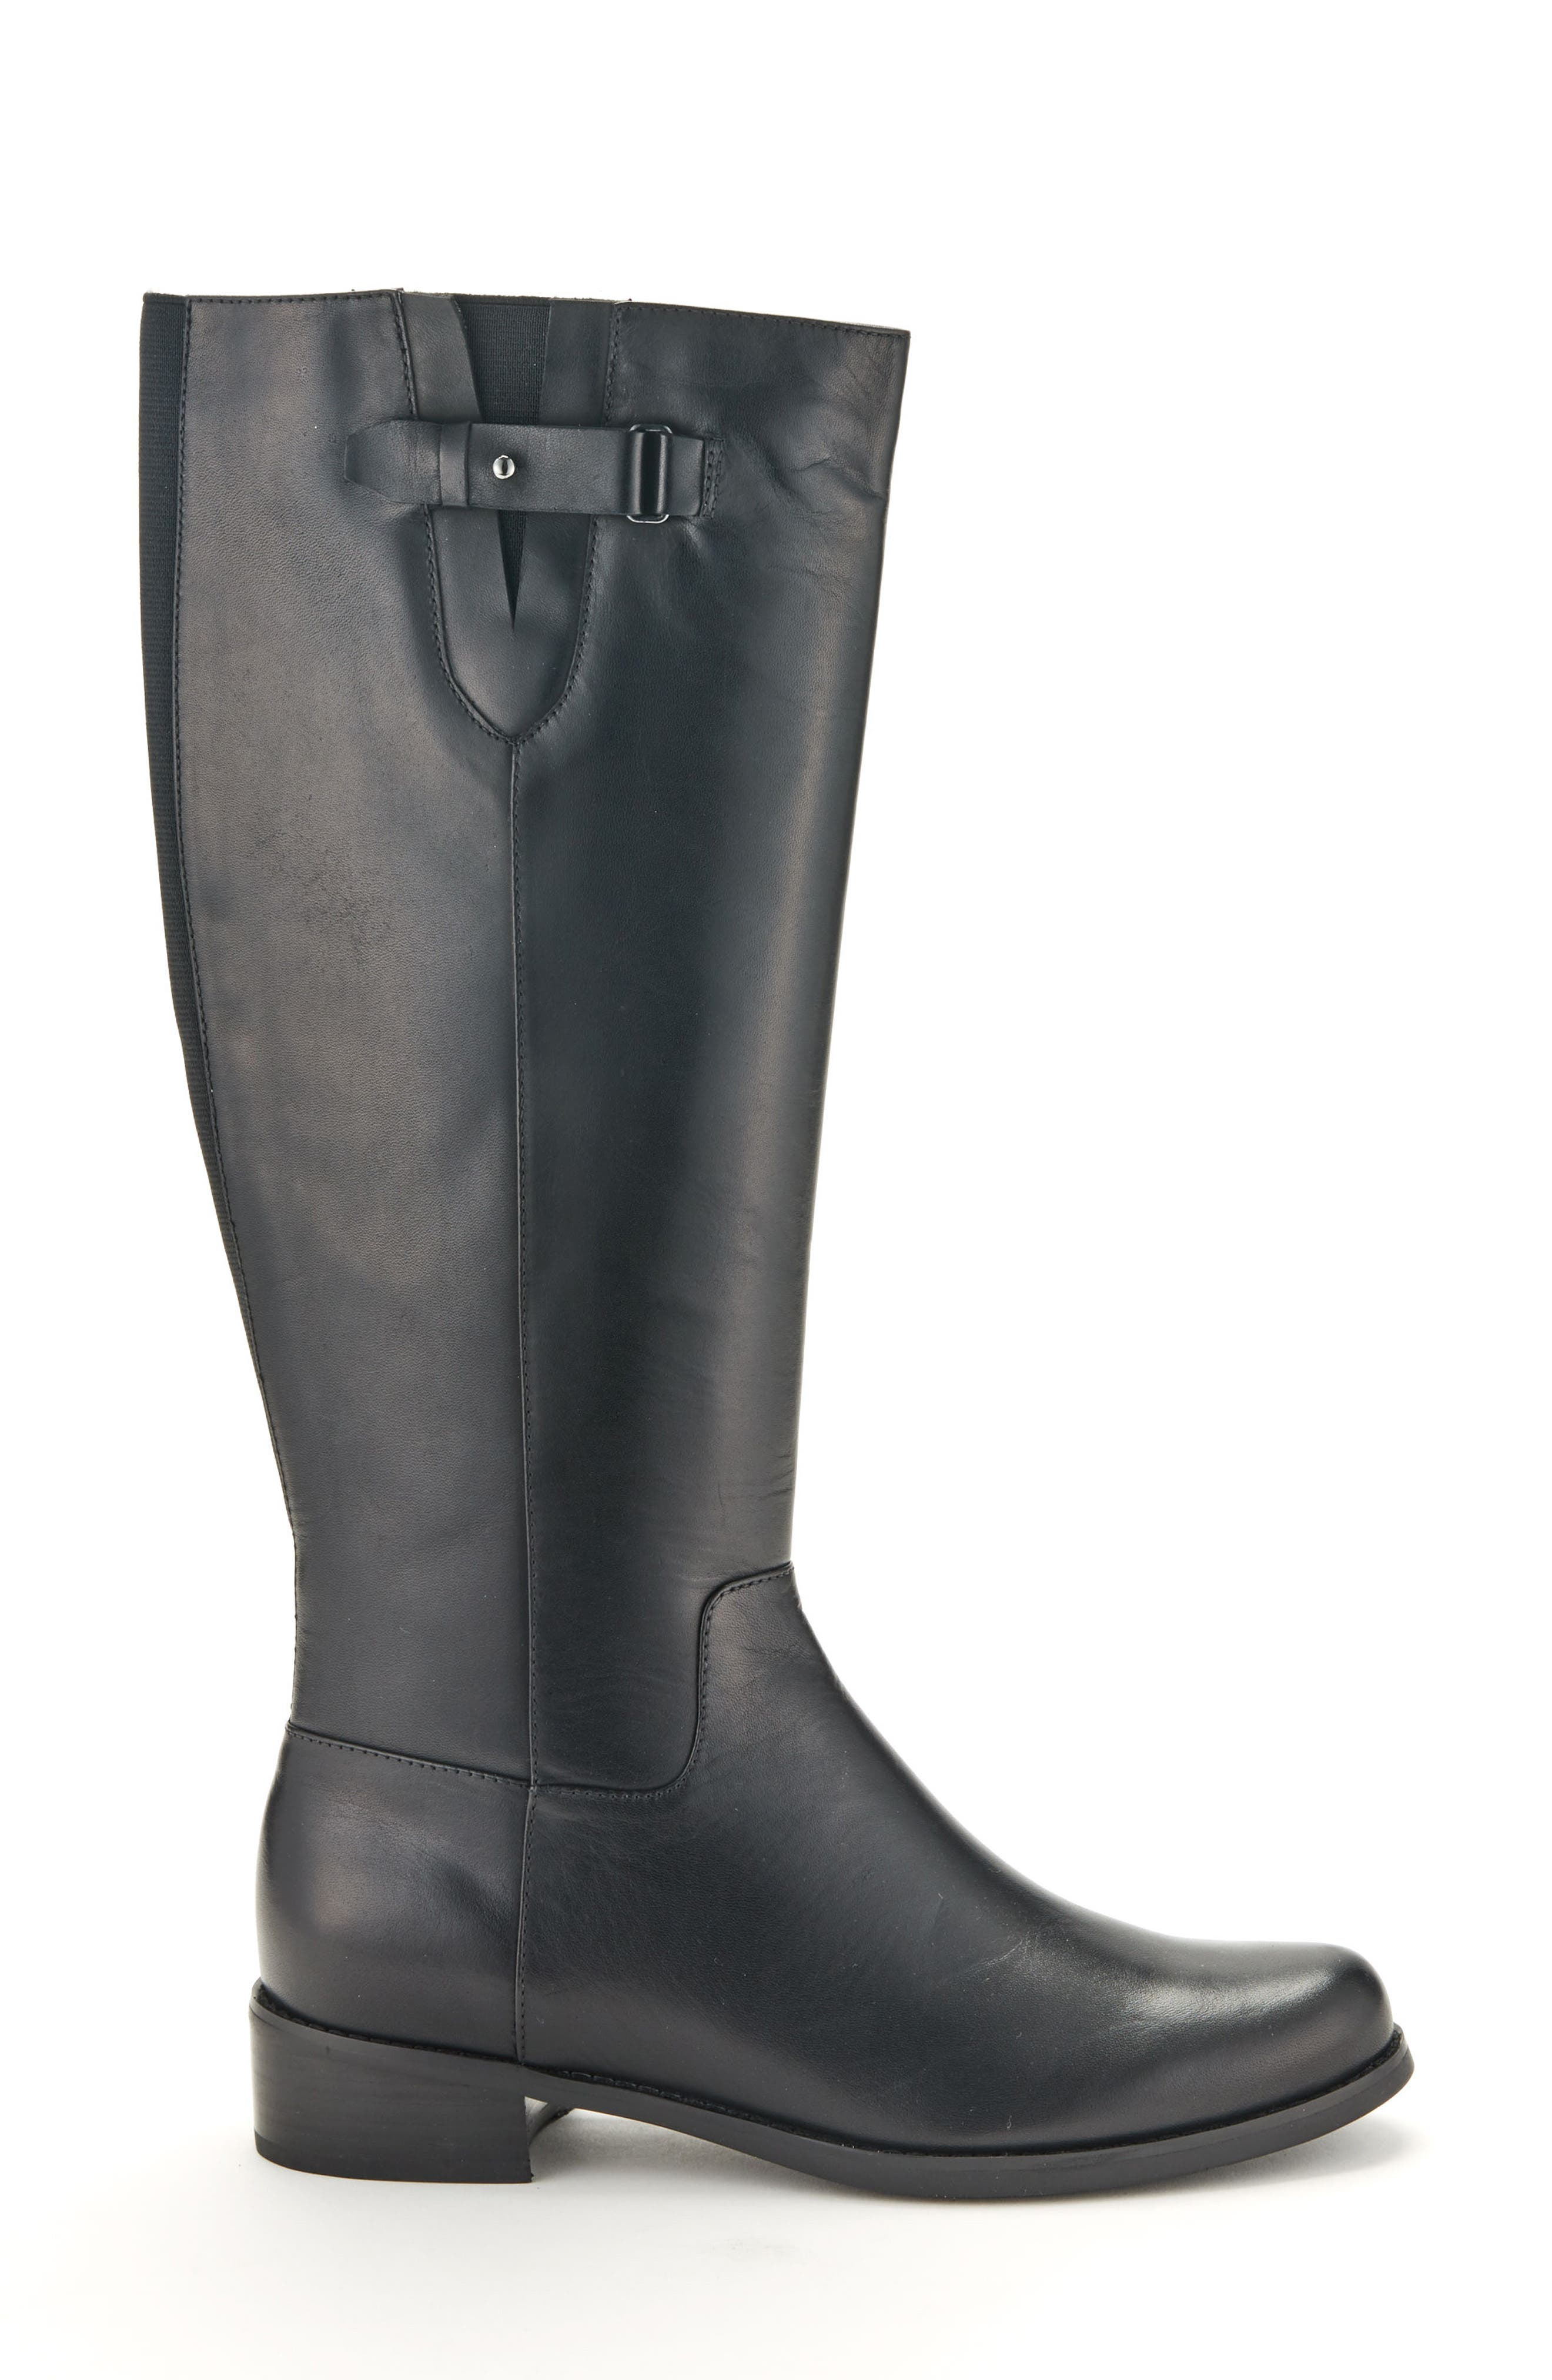 Volly Waterproof Riding Boot,                             Alternate thumbnail 3, color,                             001